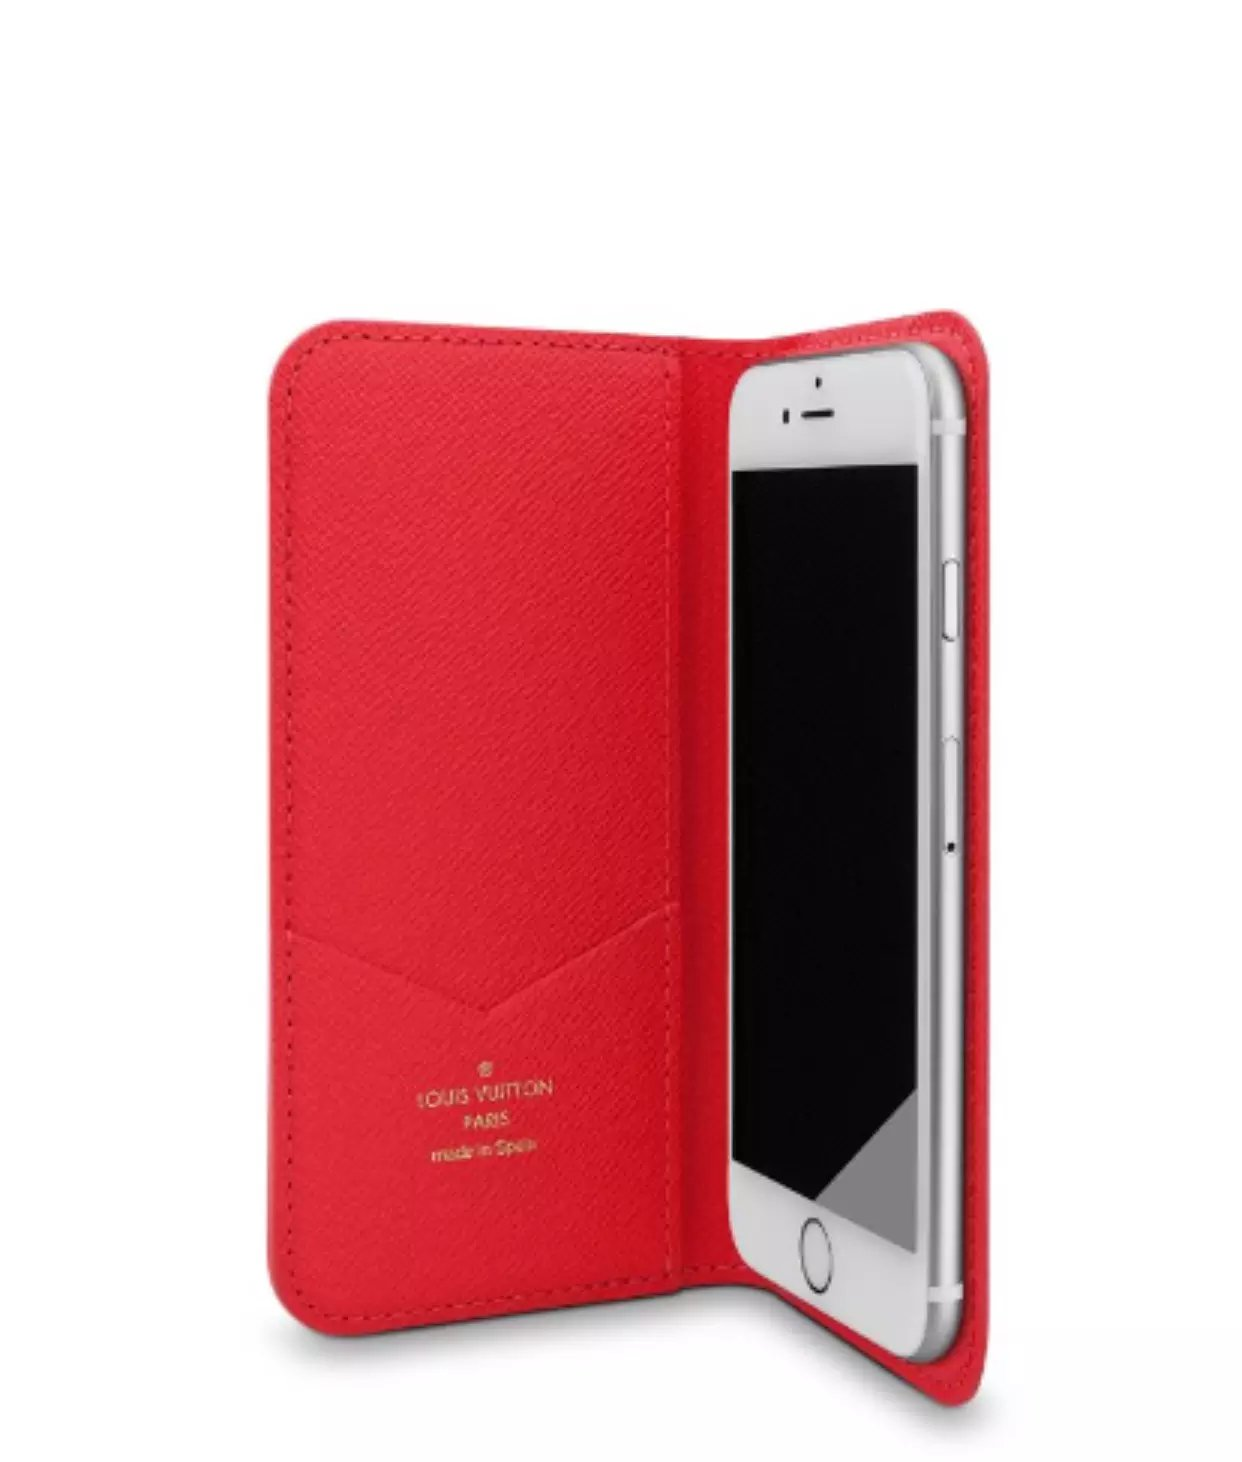 günstige iphone hüllen iphone hülle mit foto Louis Vuitton iphone 8 Plus hüllen ipad 8 Plus tasche leder iphone 8 Plus hützen iphone 8 Plus a8 Plus elbst gestalten handyhülle 8 Pluslber designen handy schutz iphone 8 Plus designer ipad hülle